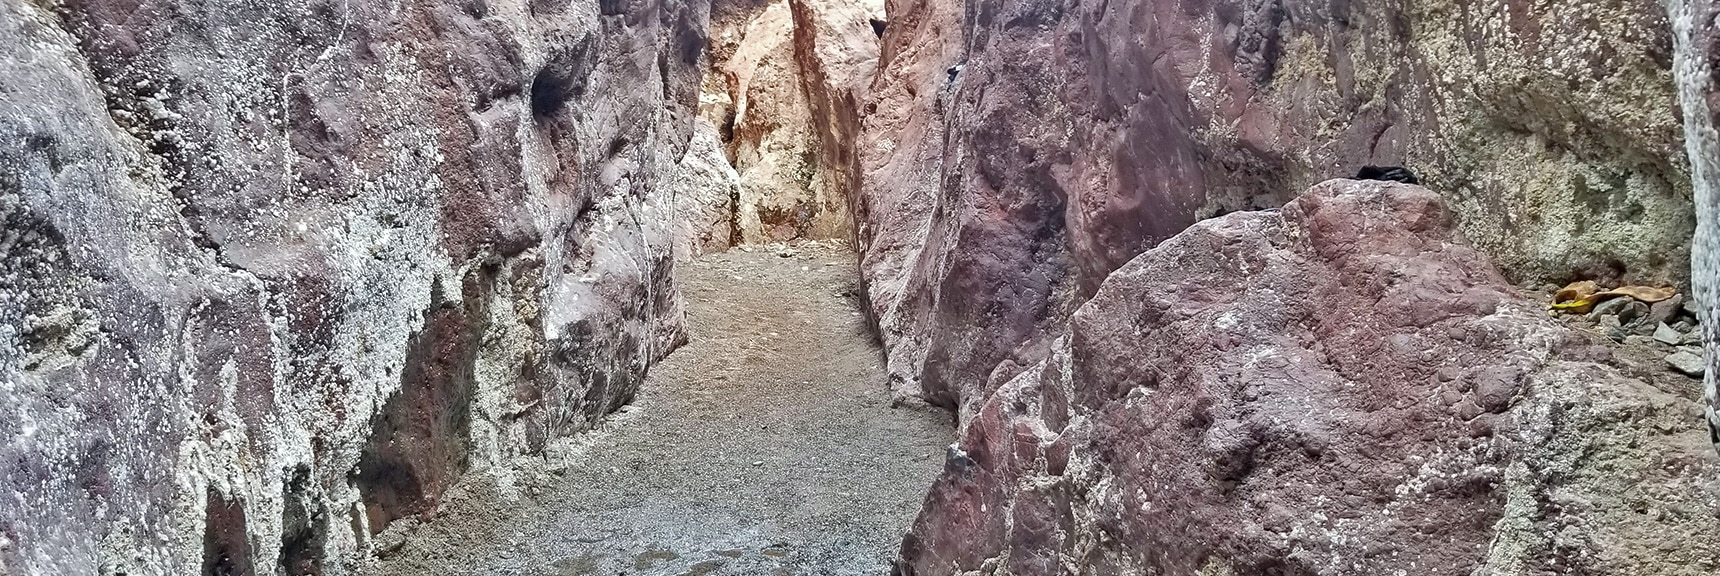 Ascending the Canyon Above the Hot Springs. | Arizona Hot Spring | Liberty Bell Arch | Lake Mead National Recreation Area, Arizona